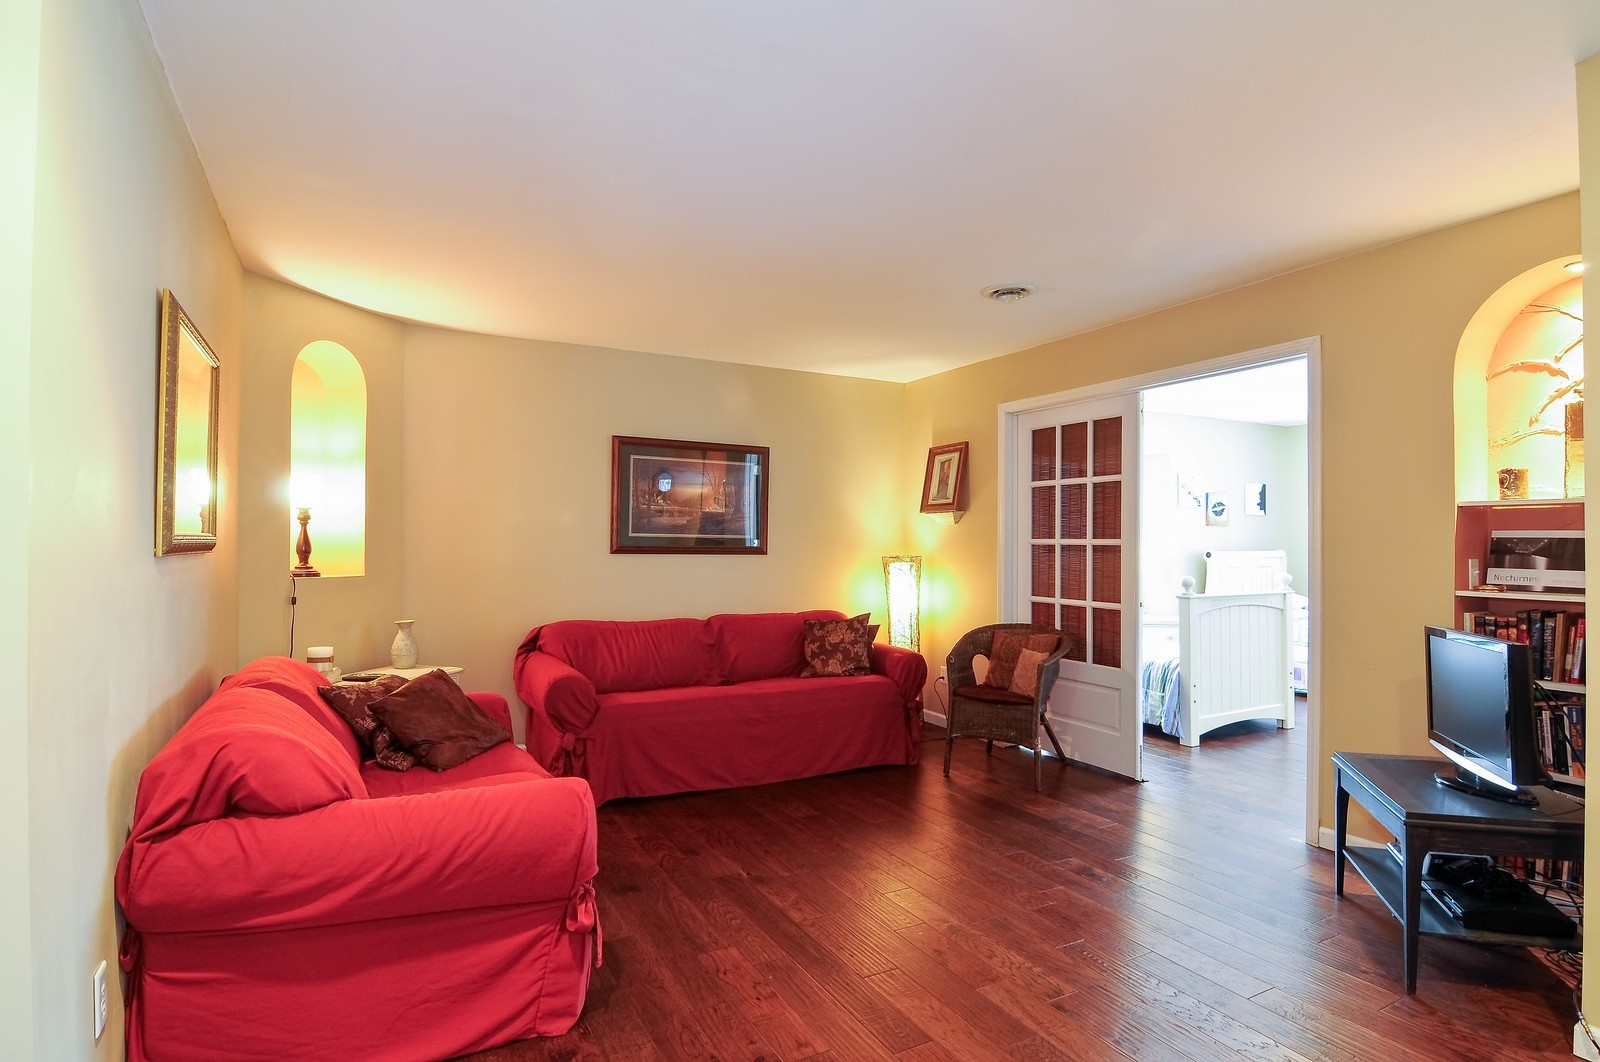 Real Estate Photography - 5171 Hilltop Ave N, Lake Elmo, MN, 55042 - Living Rm/Family Rm